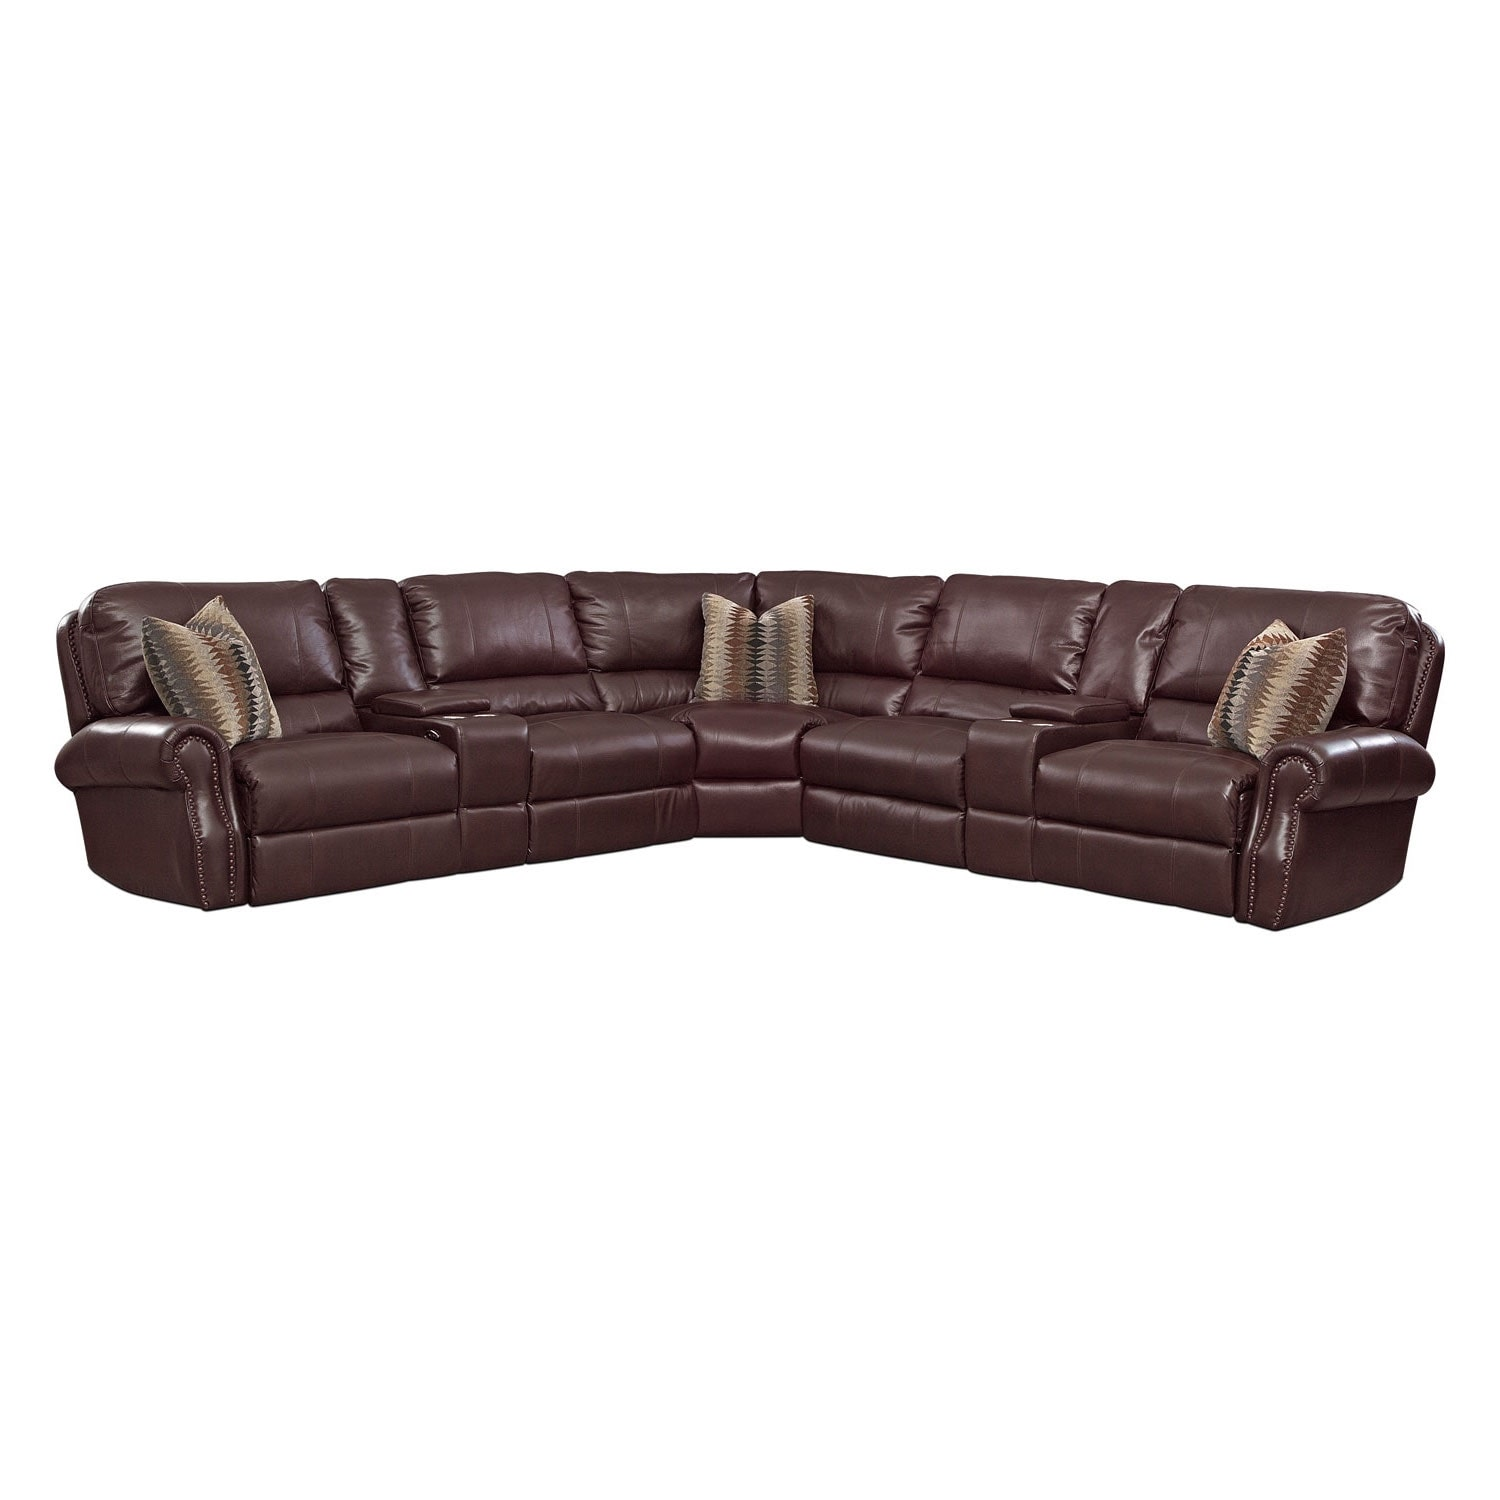 Living Room Furniture - Princeton 5 Pc. Power Reclining Sectional (Alternate)